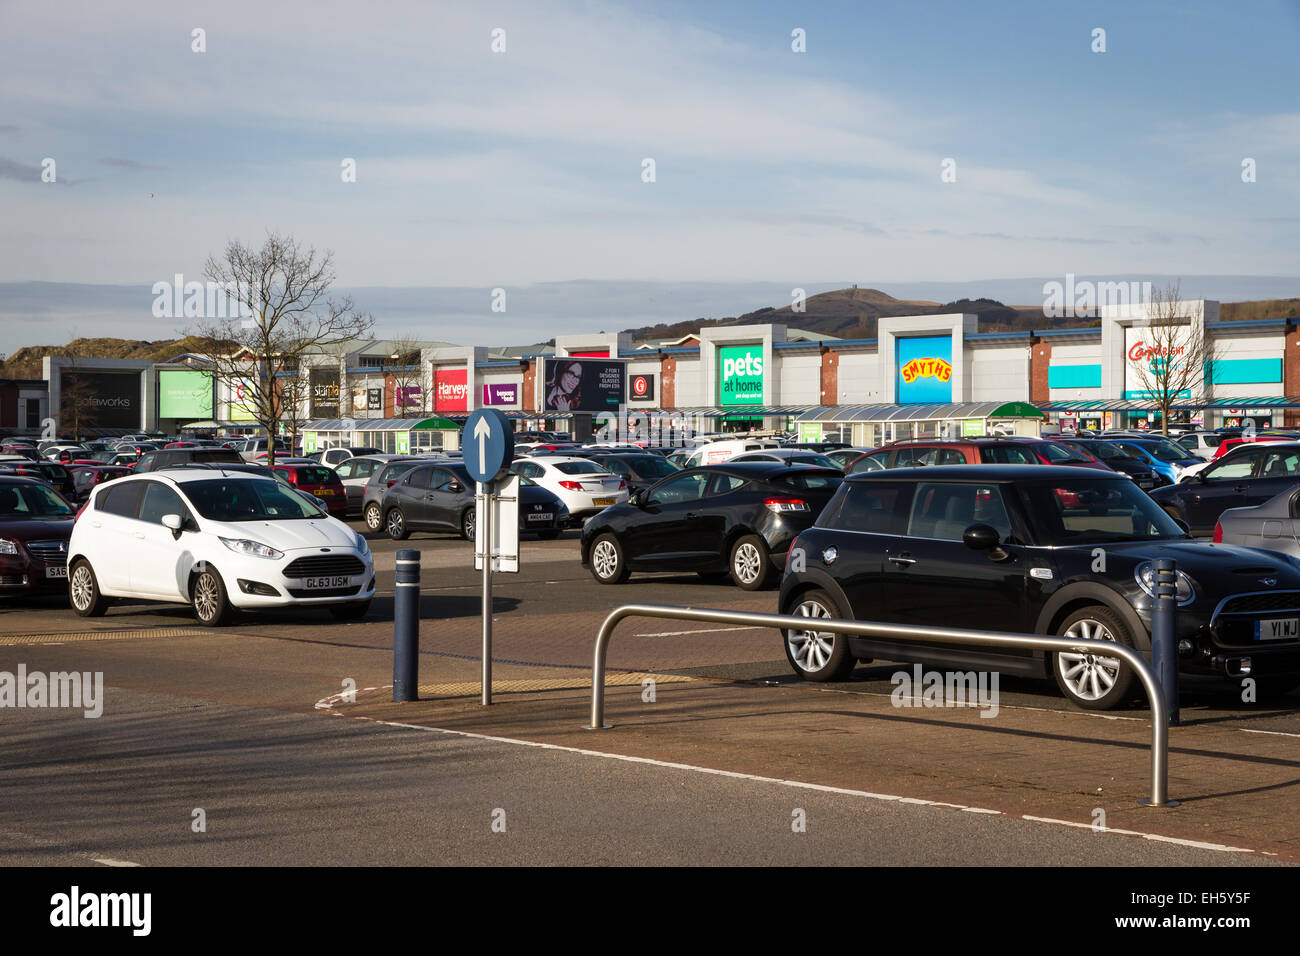 Busy Car park at Middlebrook Retail Park, Horwich, Bolton - Stock Image